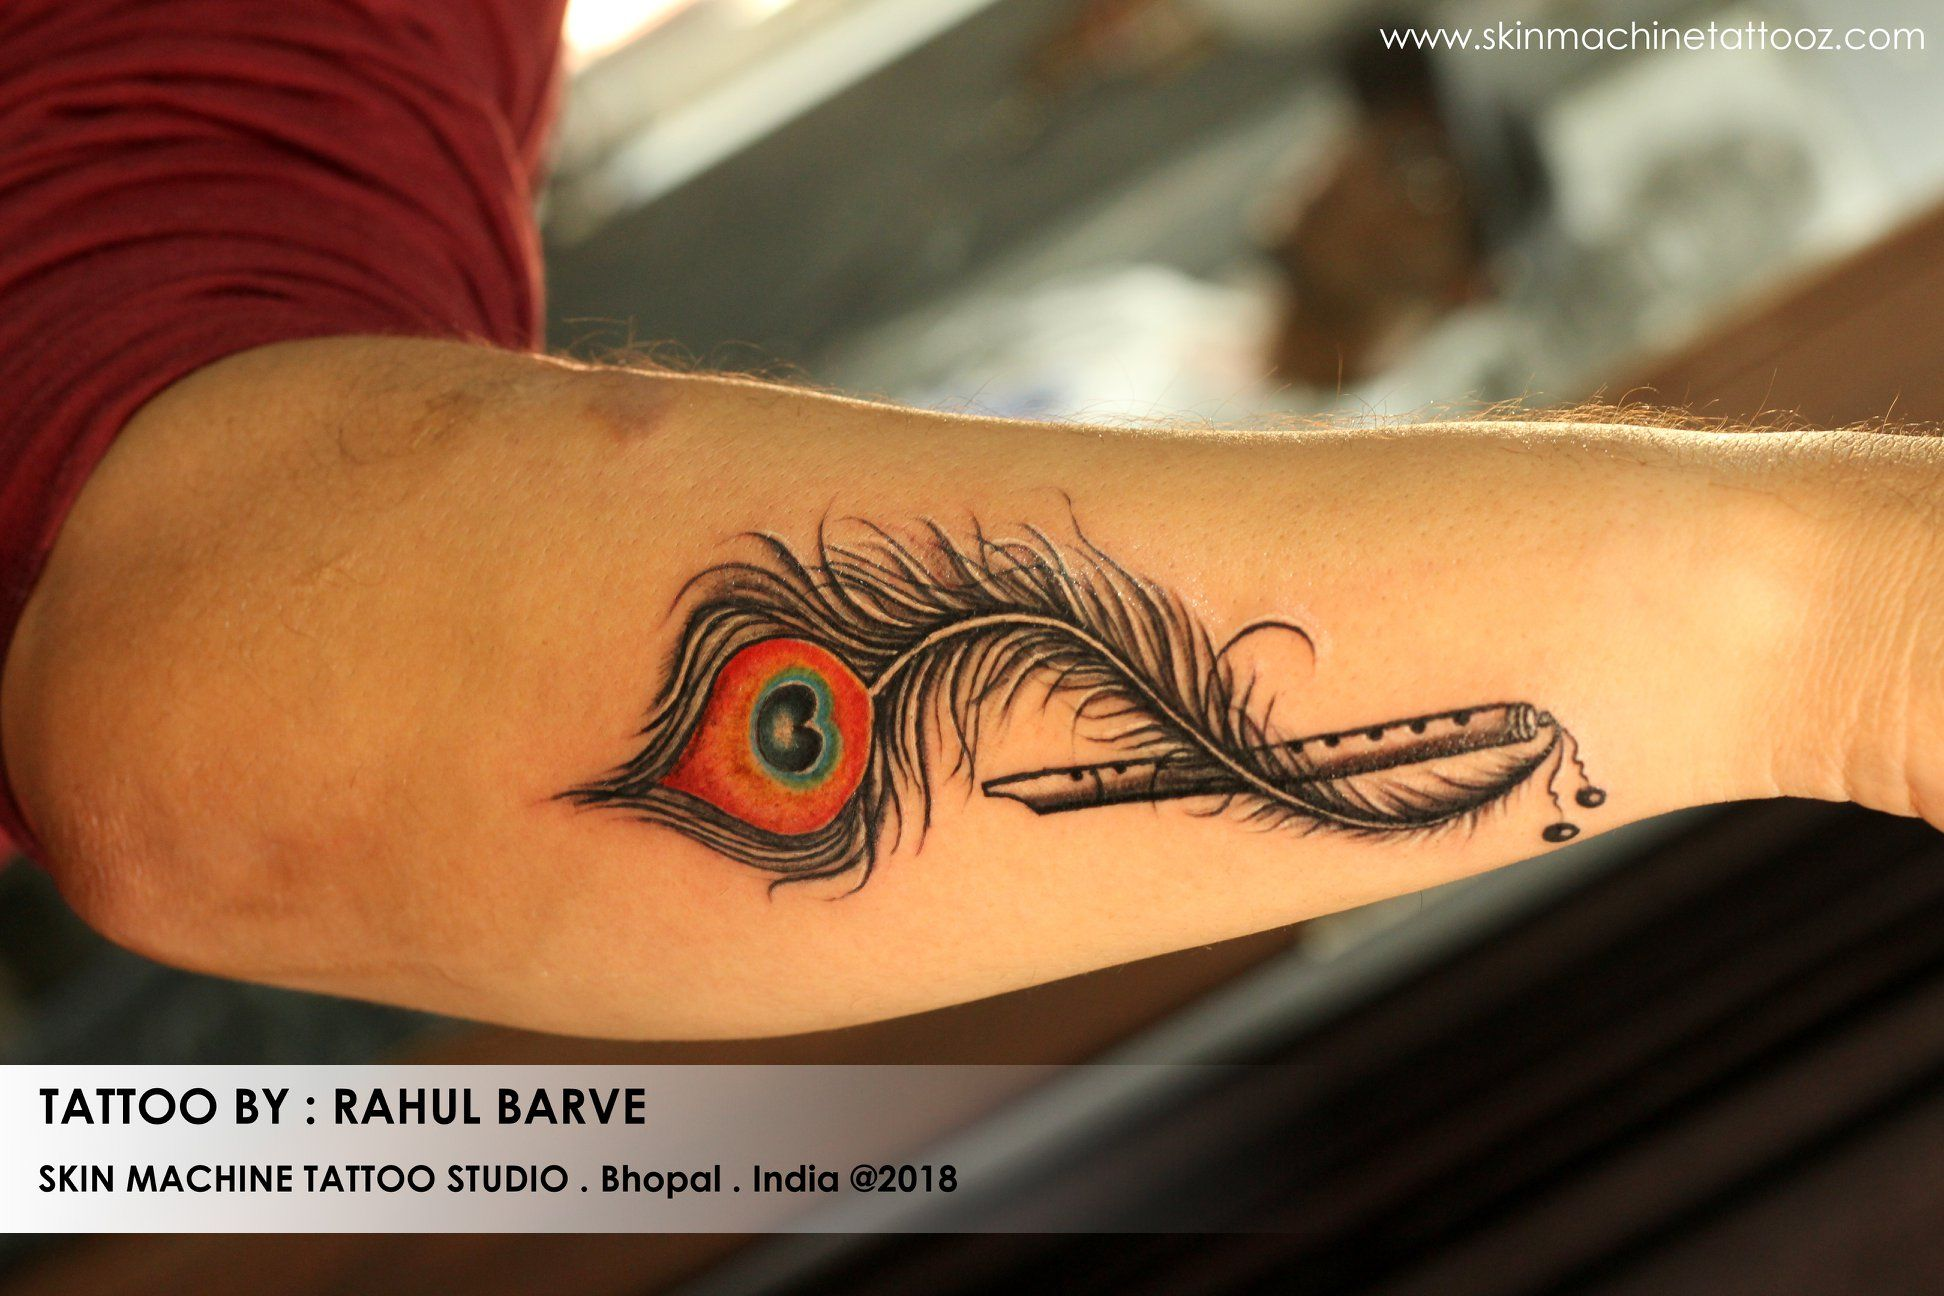 949e0c2f3 Beautiful custom Flute with peacock feather tattoo by our new boy : Rahul  Barve Thanks for looking 🙂 Email for appointments:  skinmachineteam@gmail.com ...